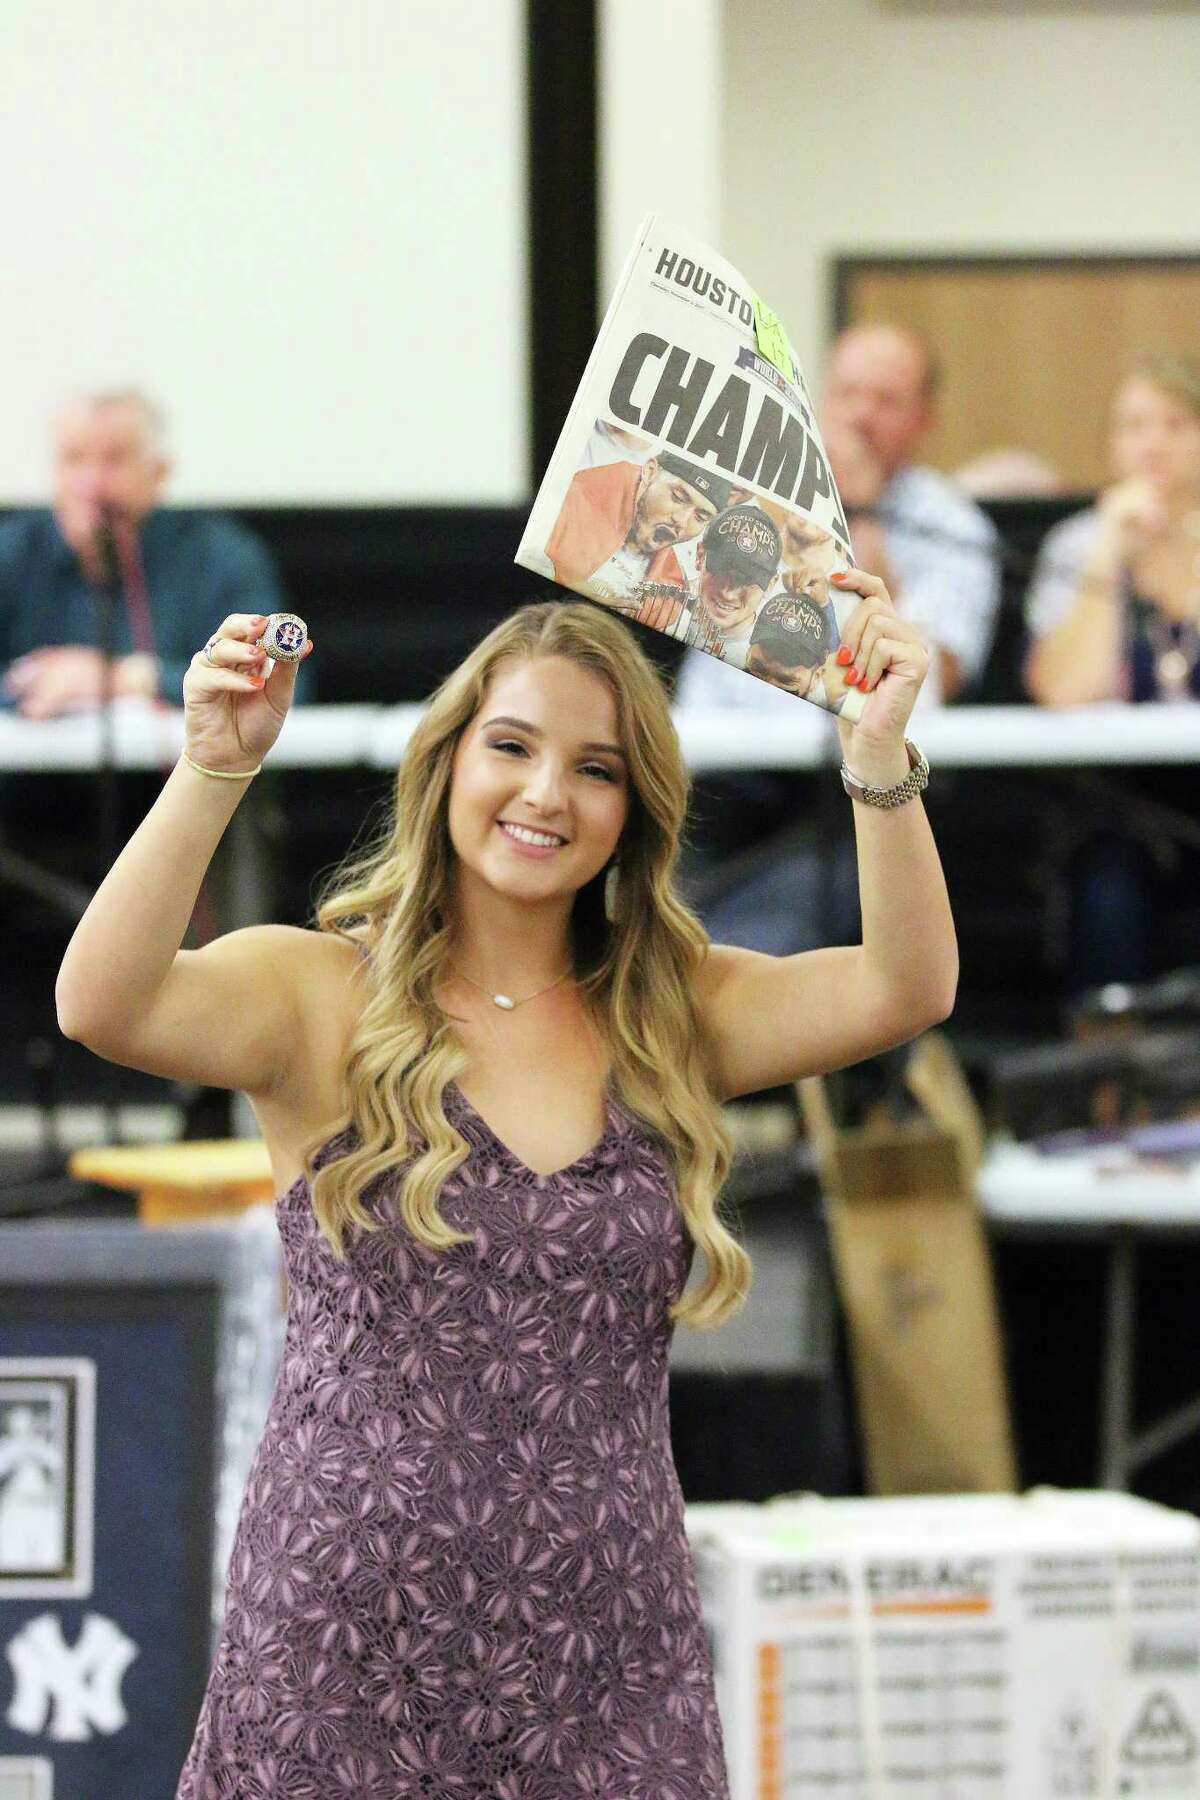 Aly Sjolander holds one of the Houston Astros World Champions replica rings and a souvenir copy of the Houston Chronicle?'s CHAMPS newspapers above her head as she shows them off during the live auction at the Liberty-Dayton Chamber of Commerce?'s 500 fundraiser Friday night.